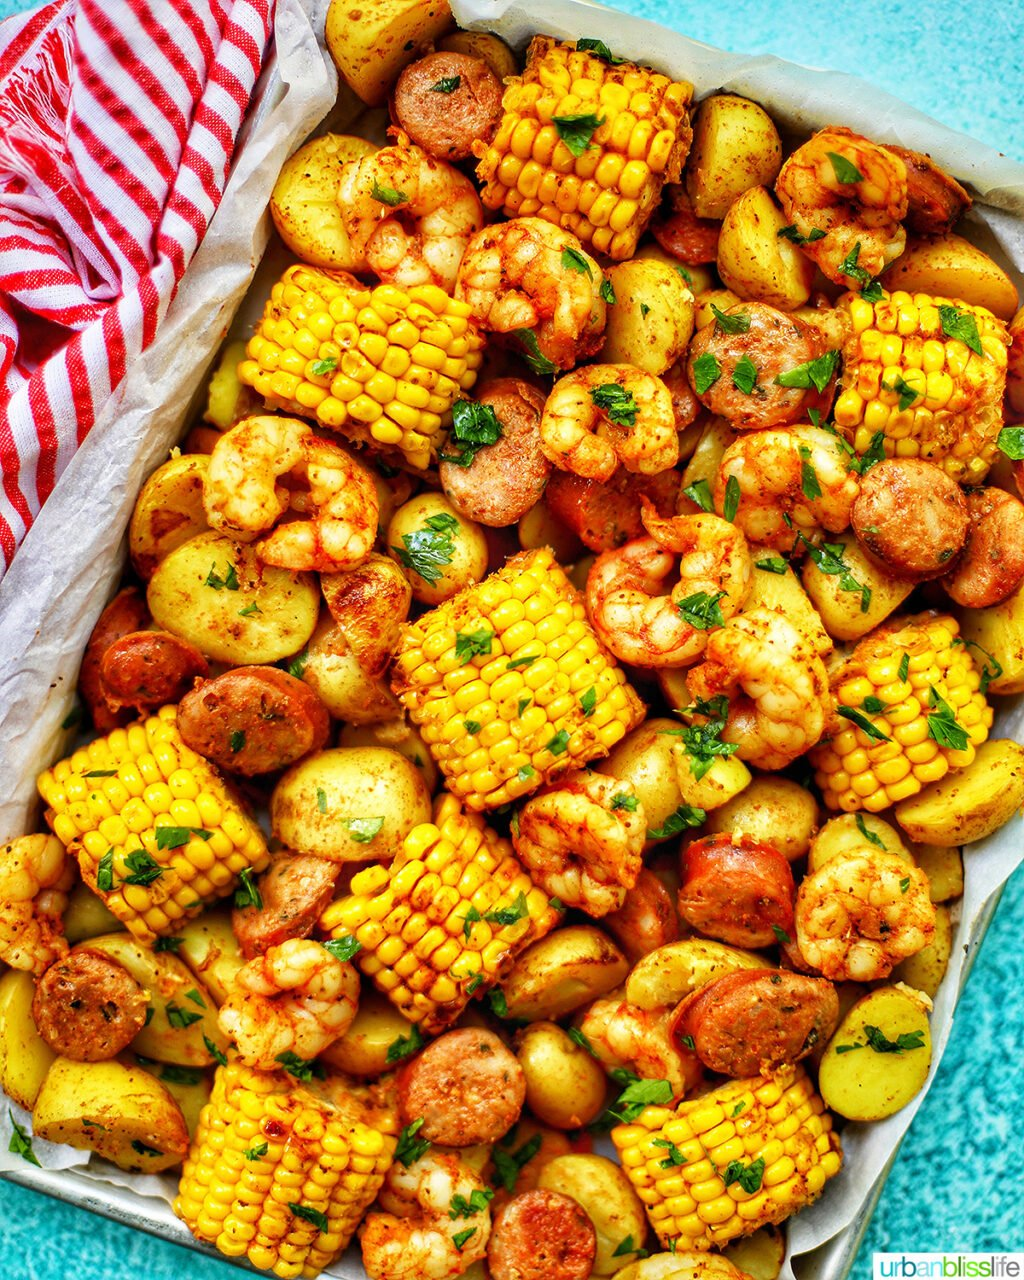 tray of seafood, corn, sausage low country boil with blue background and red and white towel